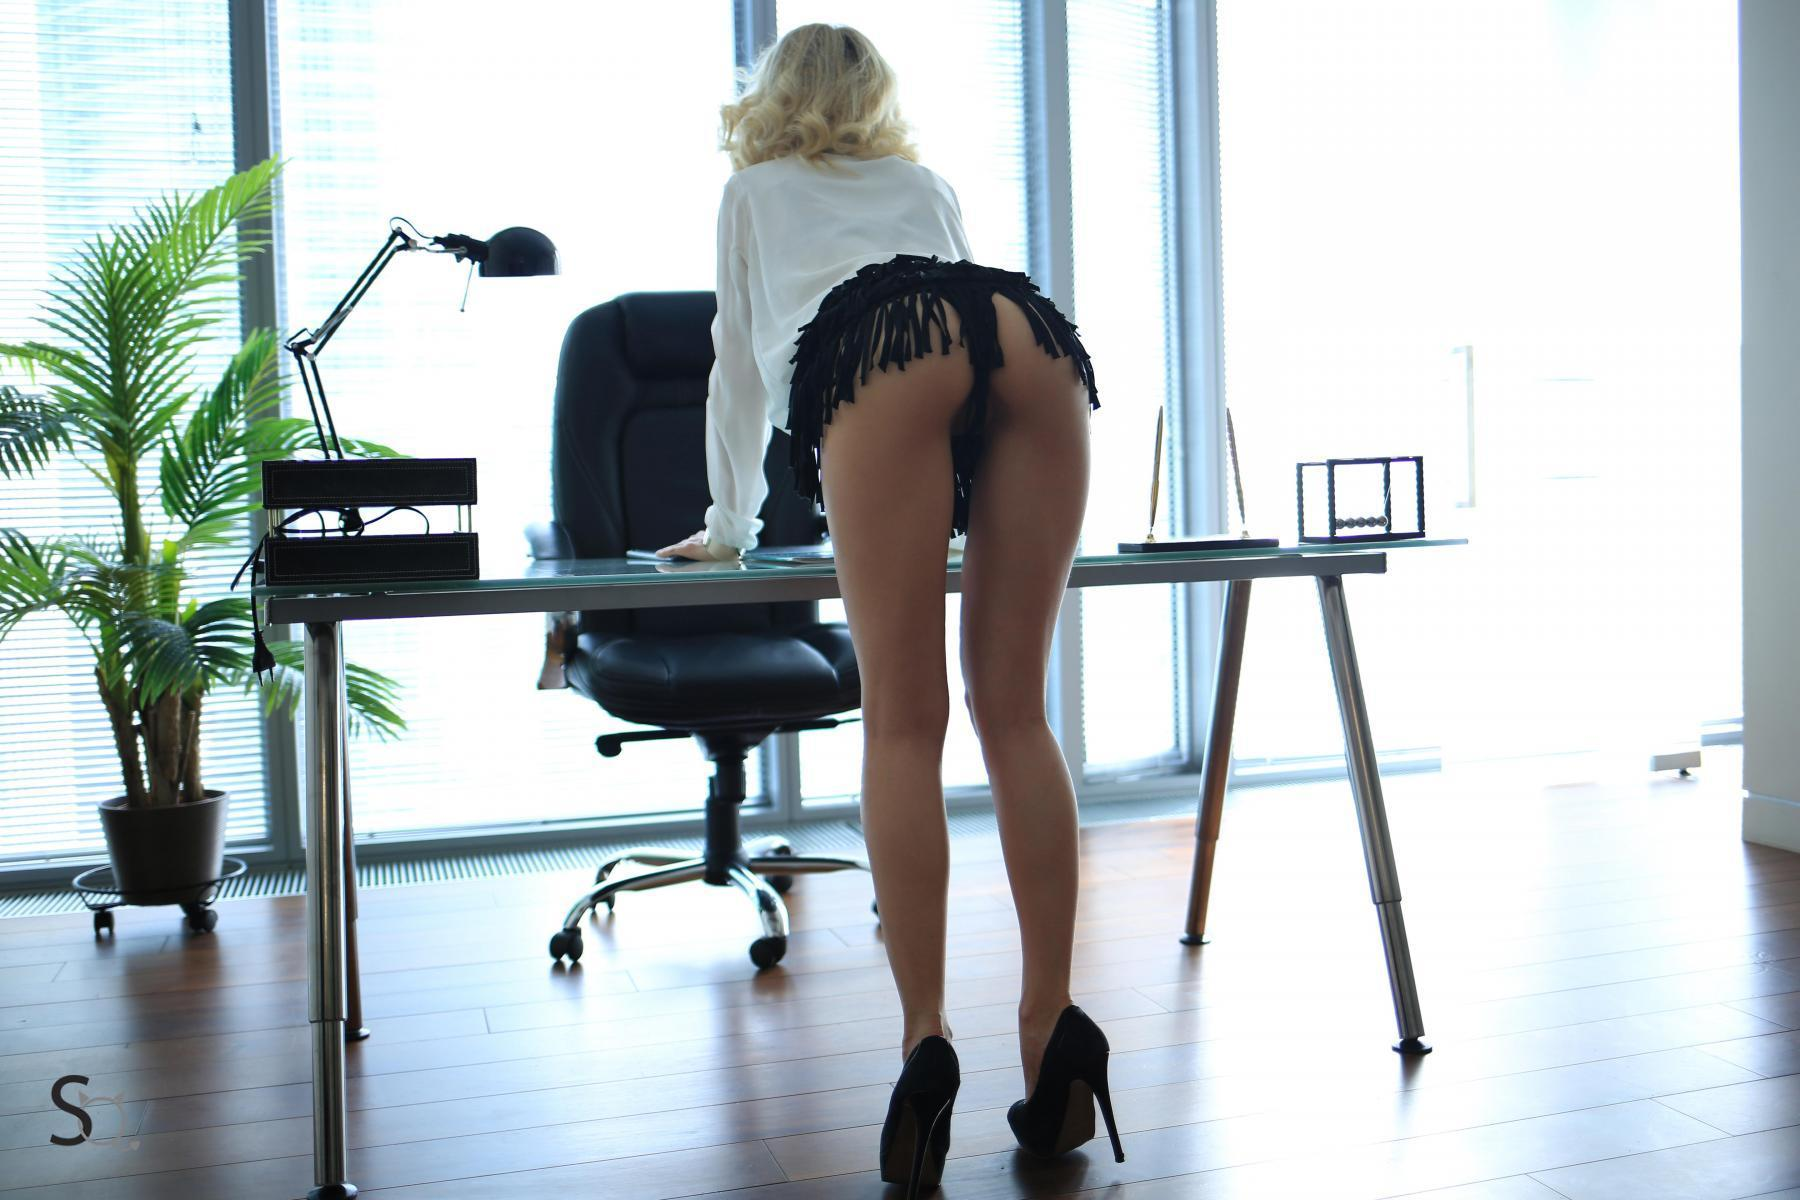 MonroQ leaning on her desk with a fantastic view of her cute ass